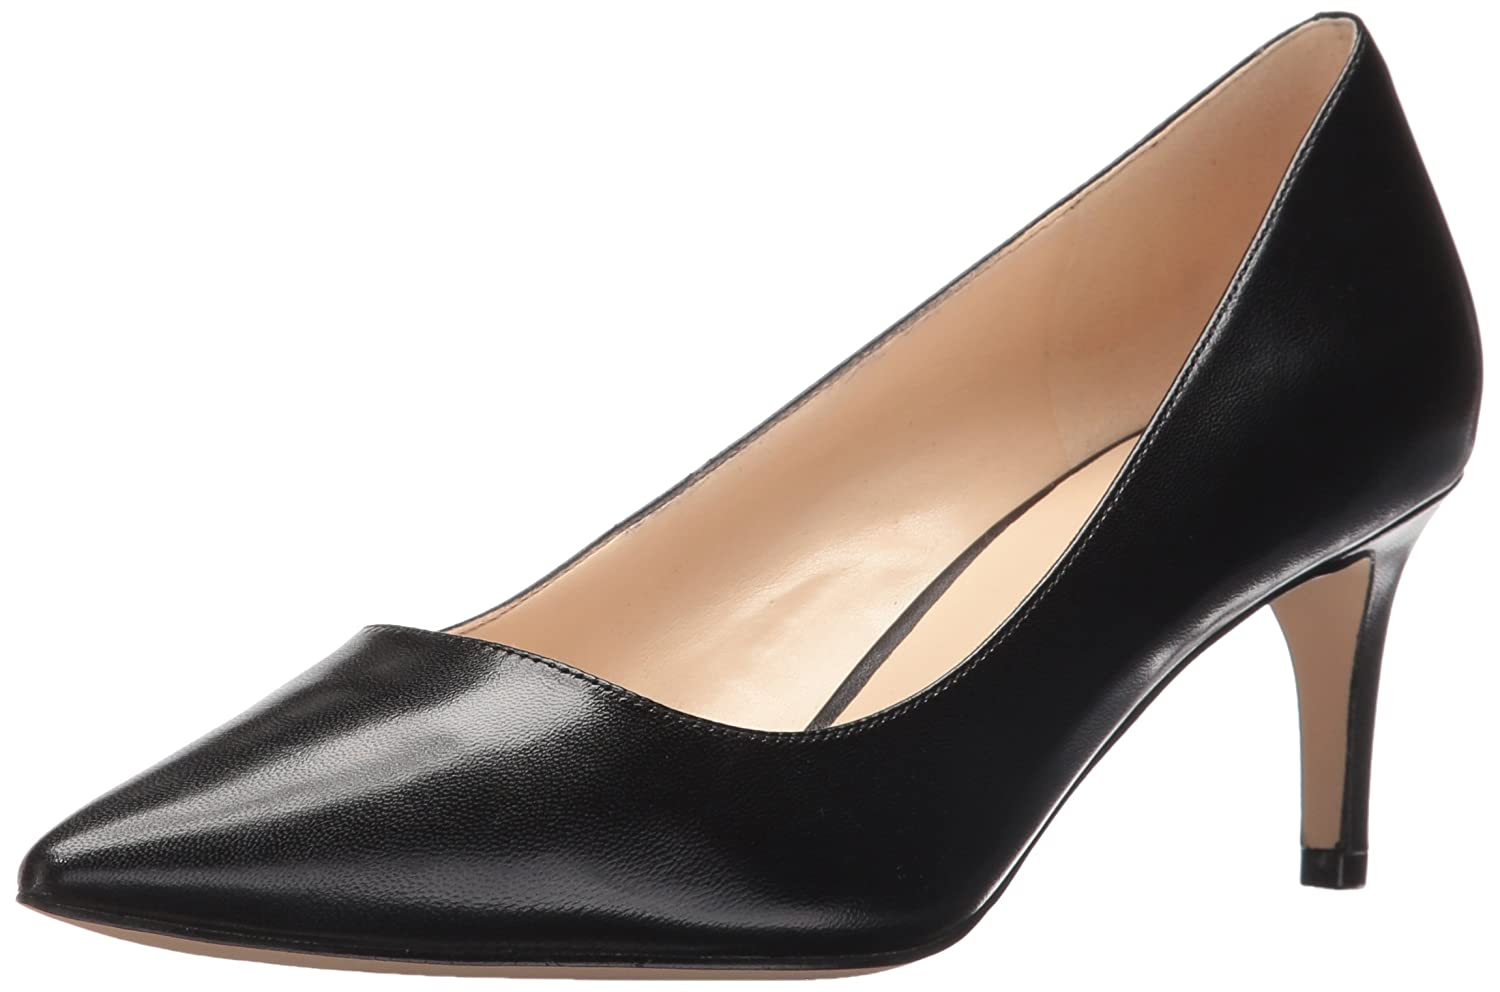 Nine West Women's Smith Leather Dress Pump B01M03IB8Q 10 B(M) US|Black